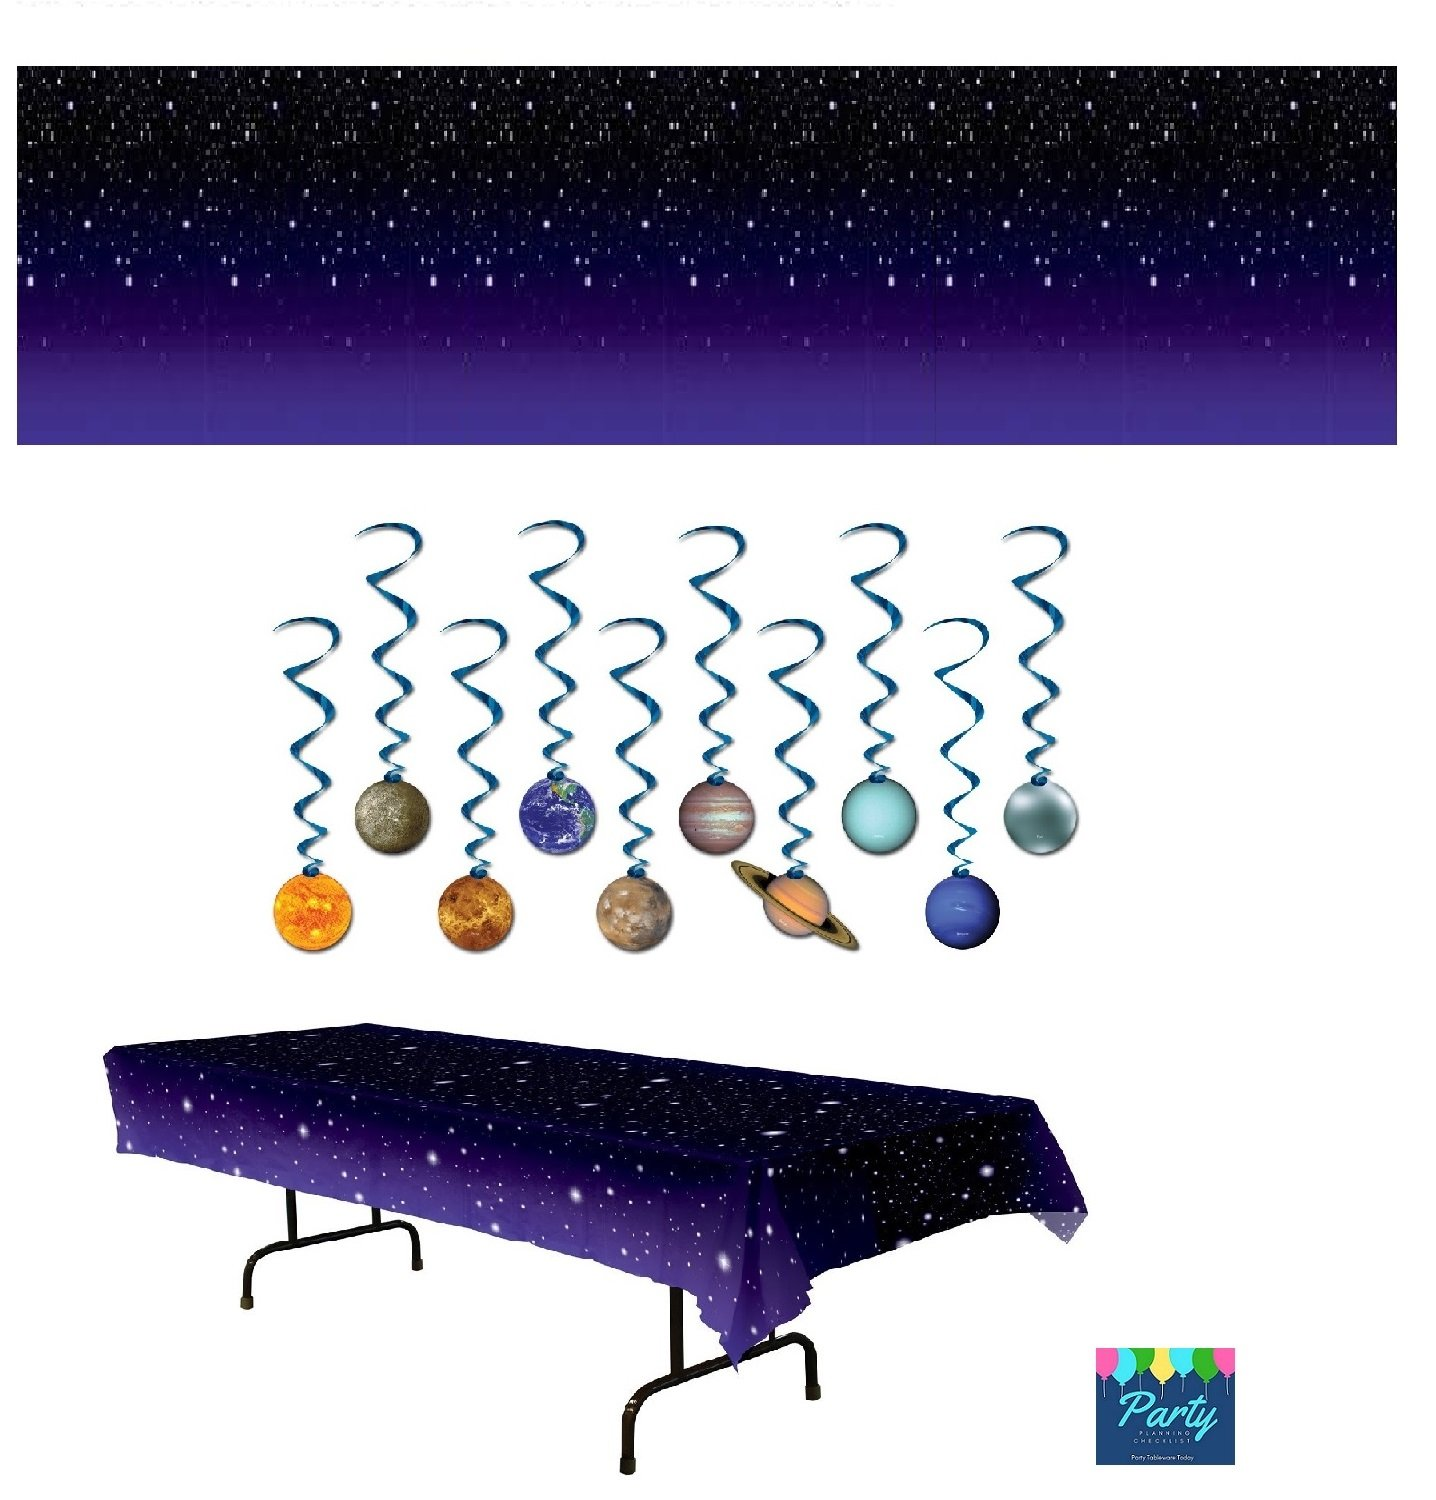 Space Party Supplies - Outer Space Stars Table Cover, Star Night Room Scene Setter Back Drop, and Solar System Planet Swirl Decorations